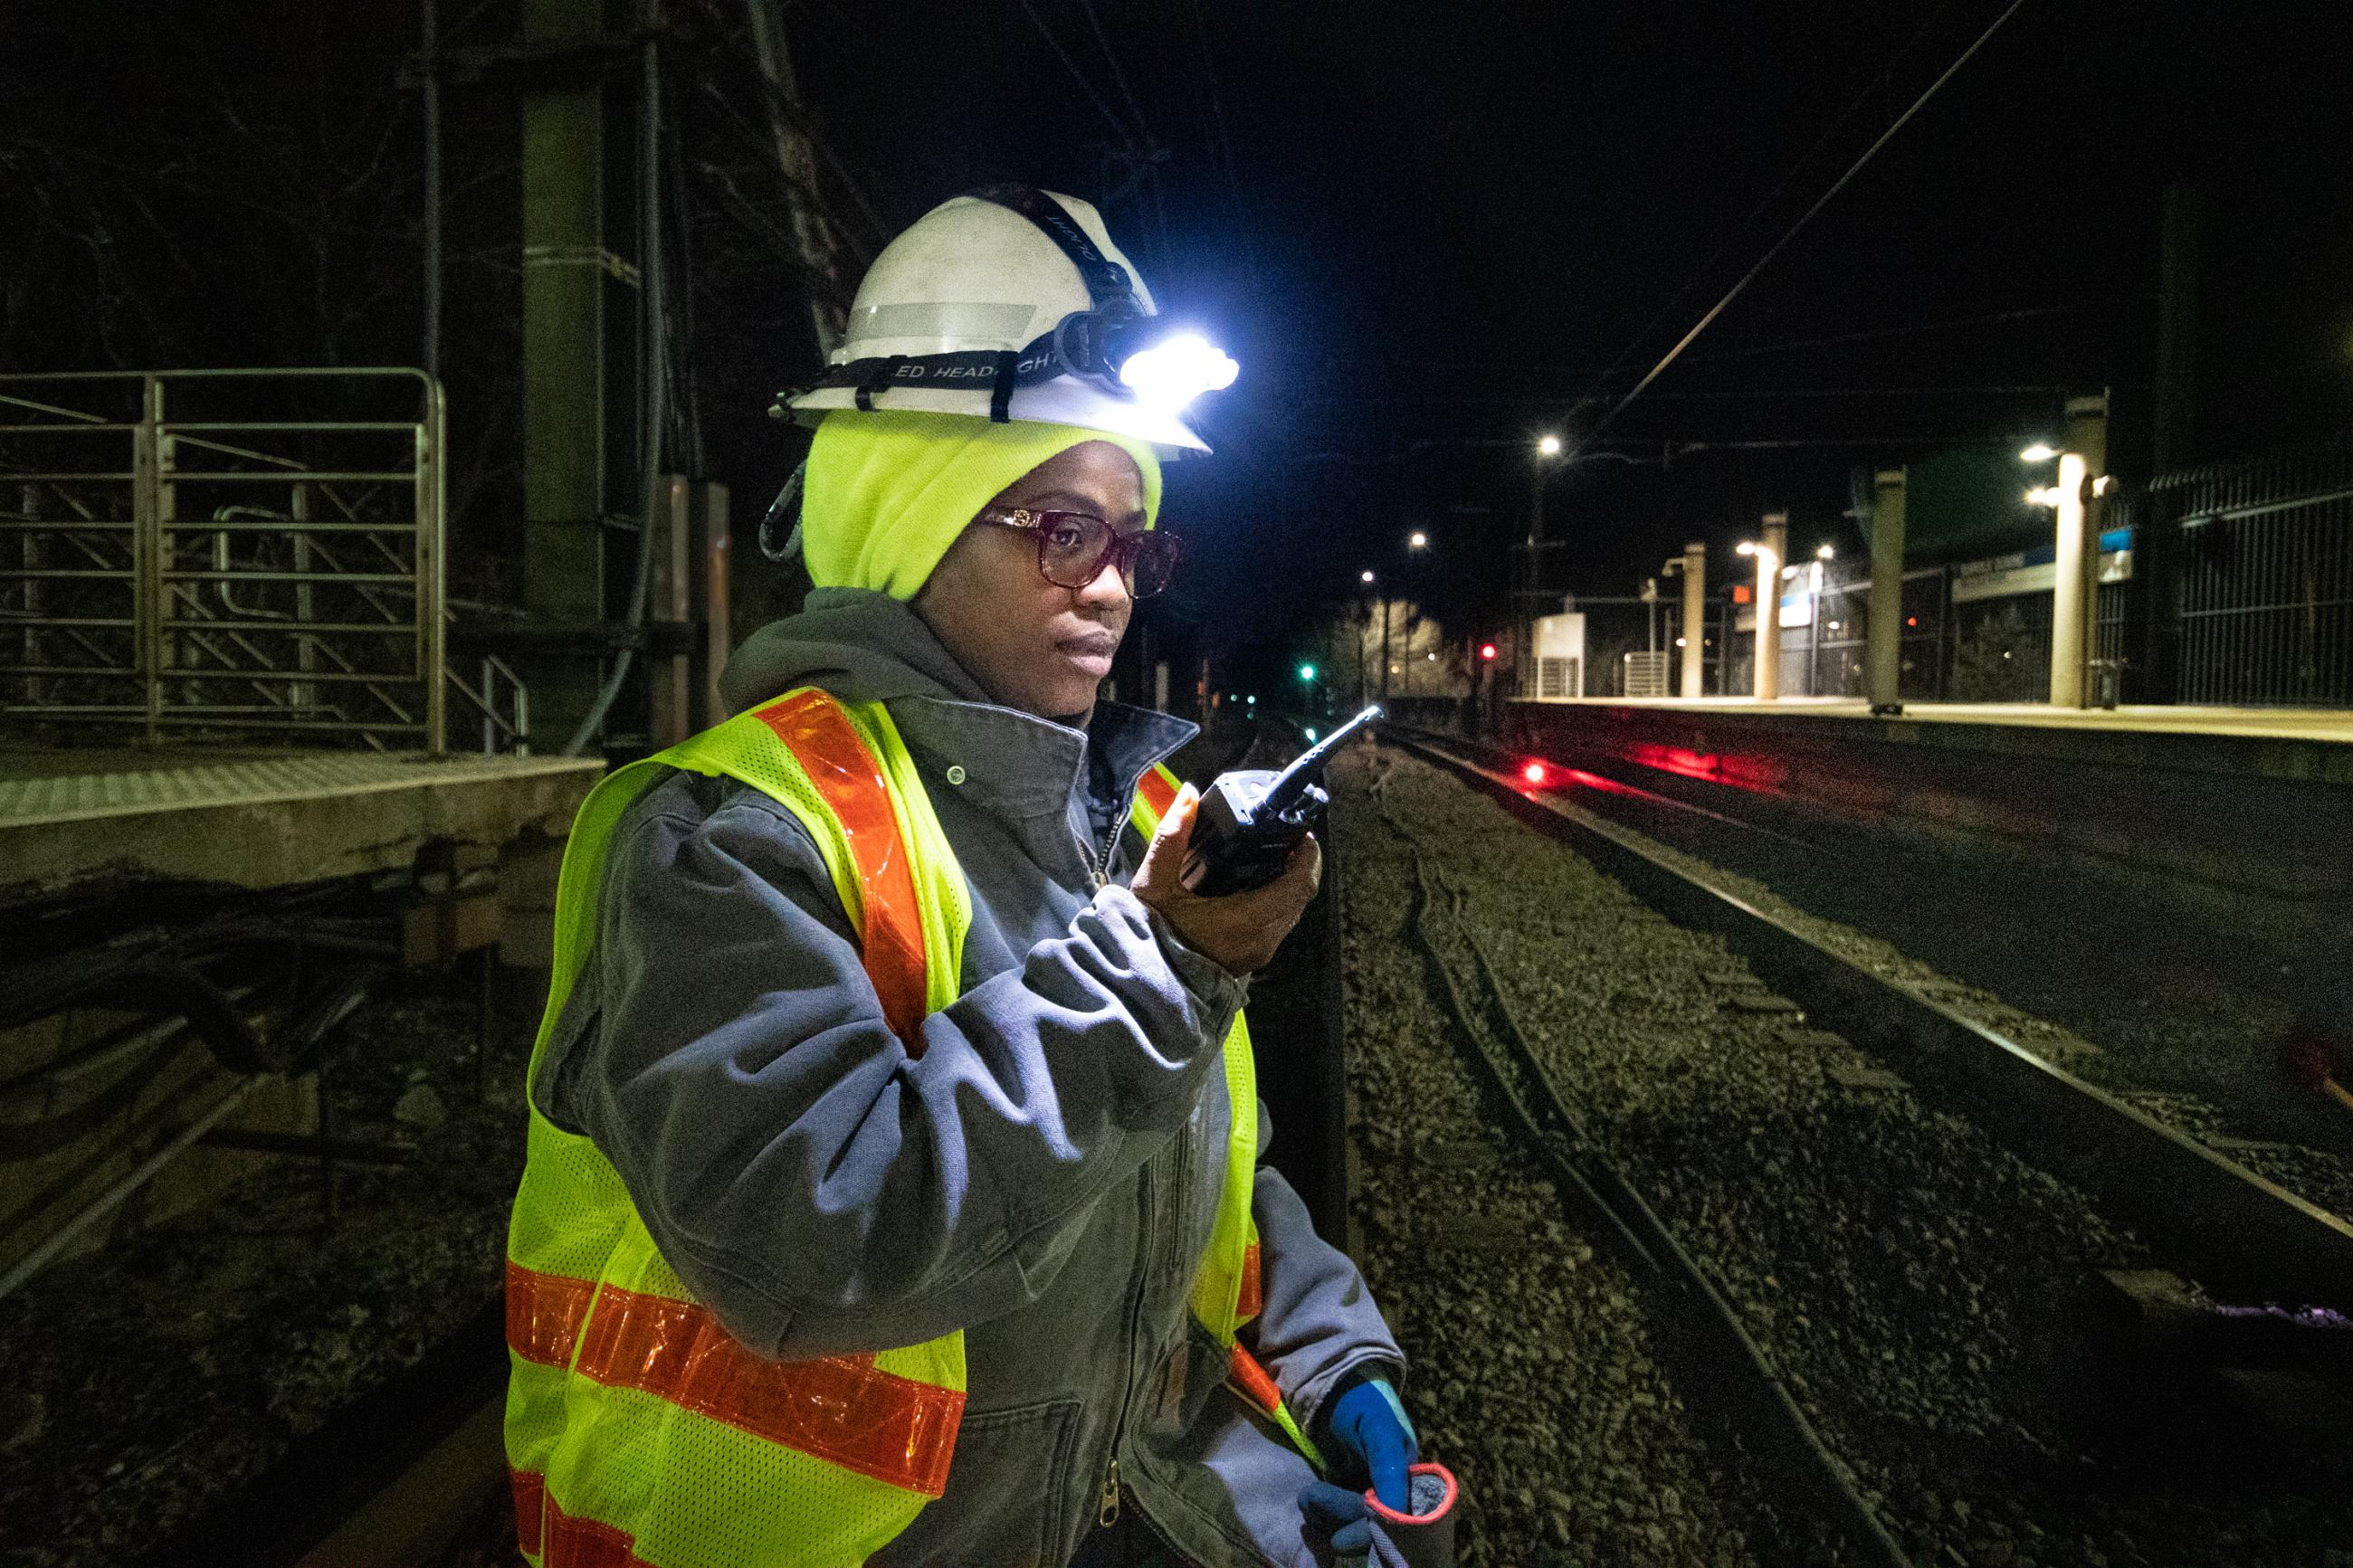 A crew woman at night along the Blue Line tracks, with a headlamp and safety vest